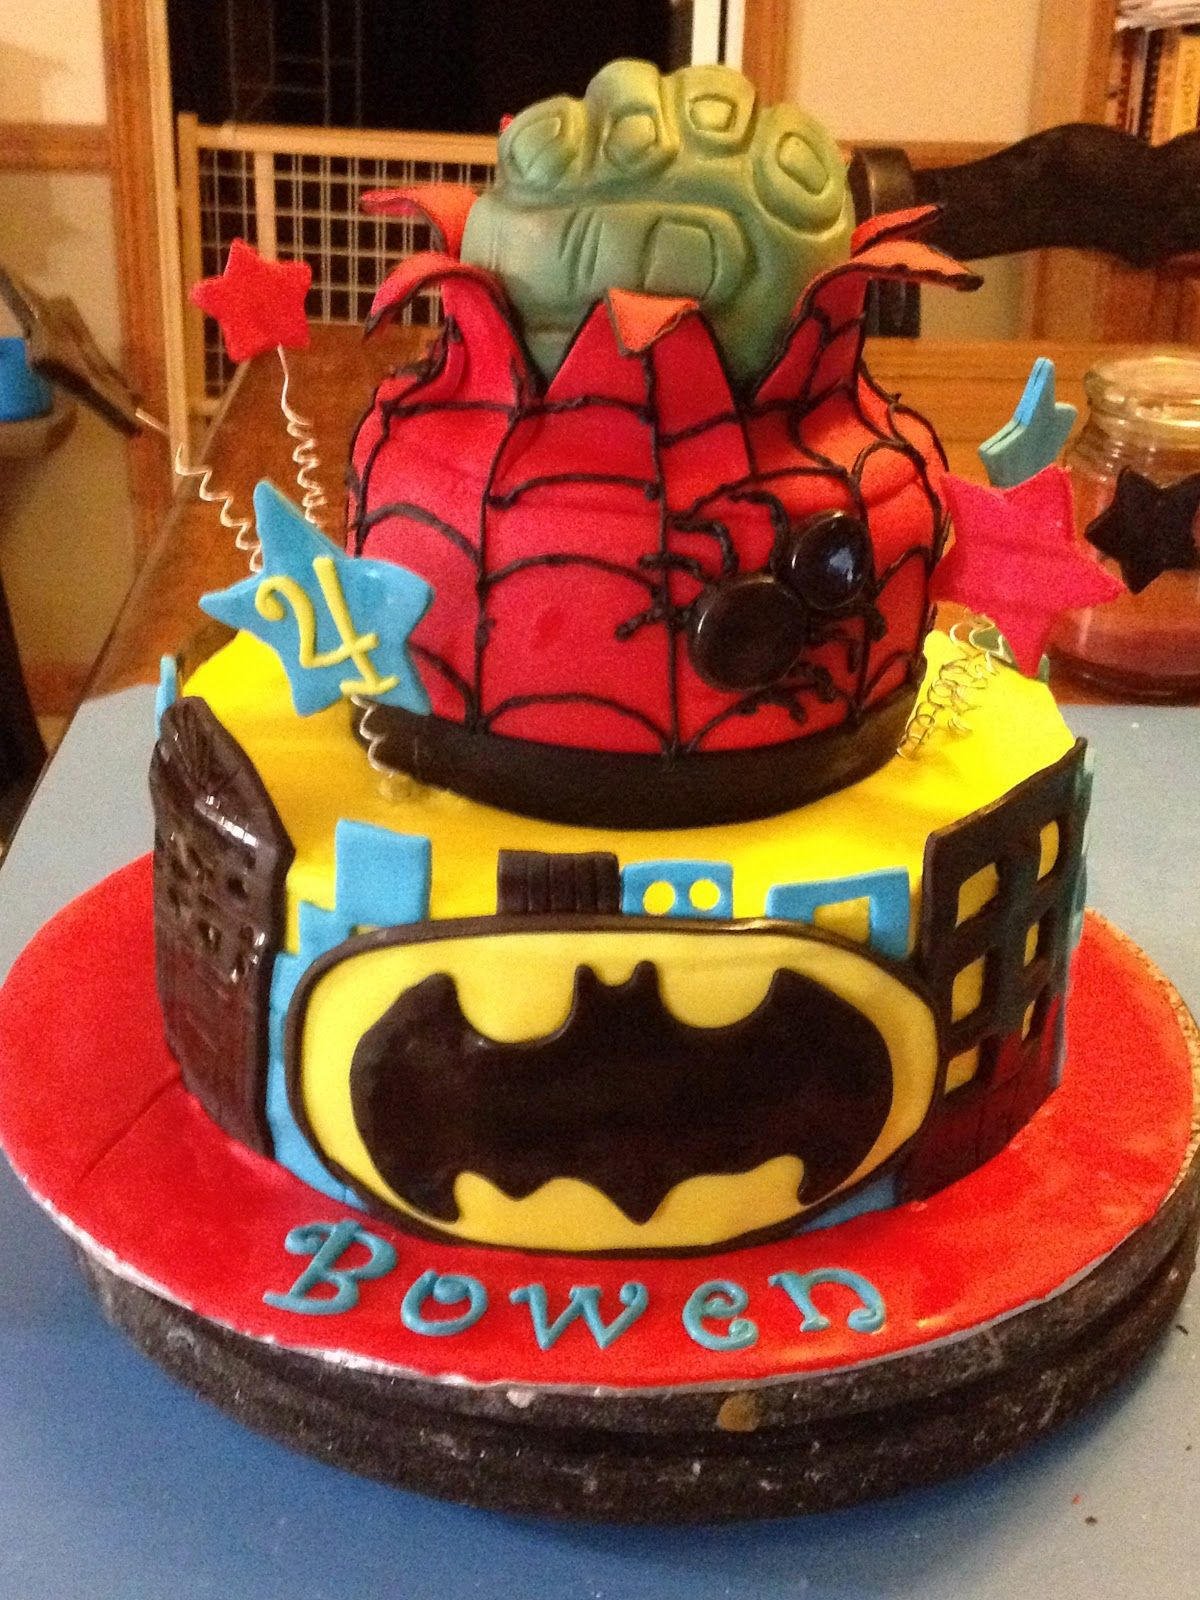 His Birthday Cake Is Cooler Then Mine And He Only Four Walmart Cakes